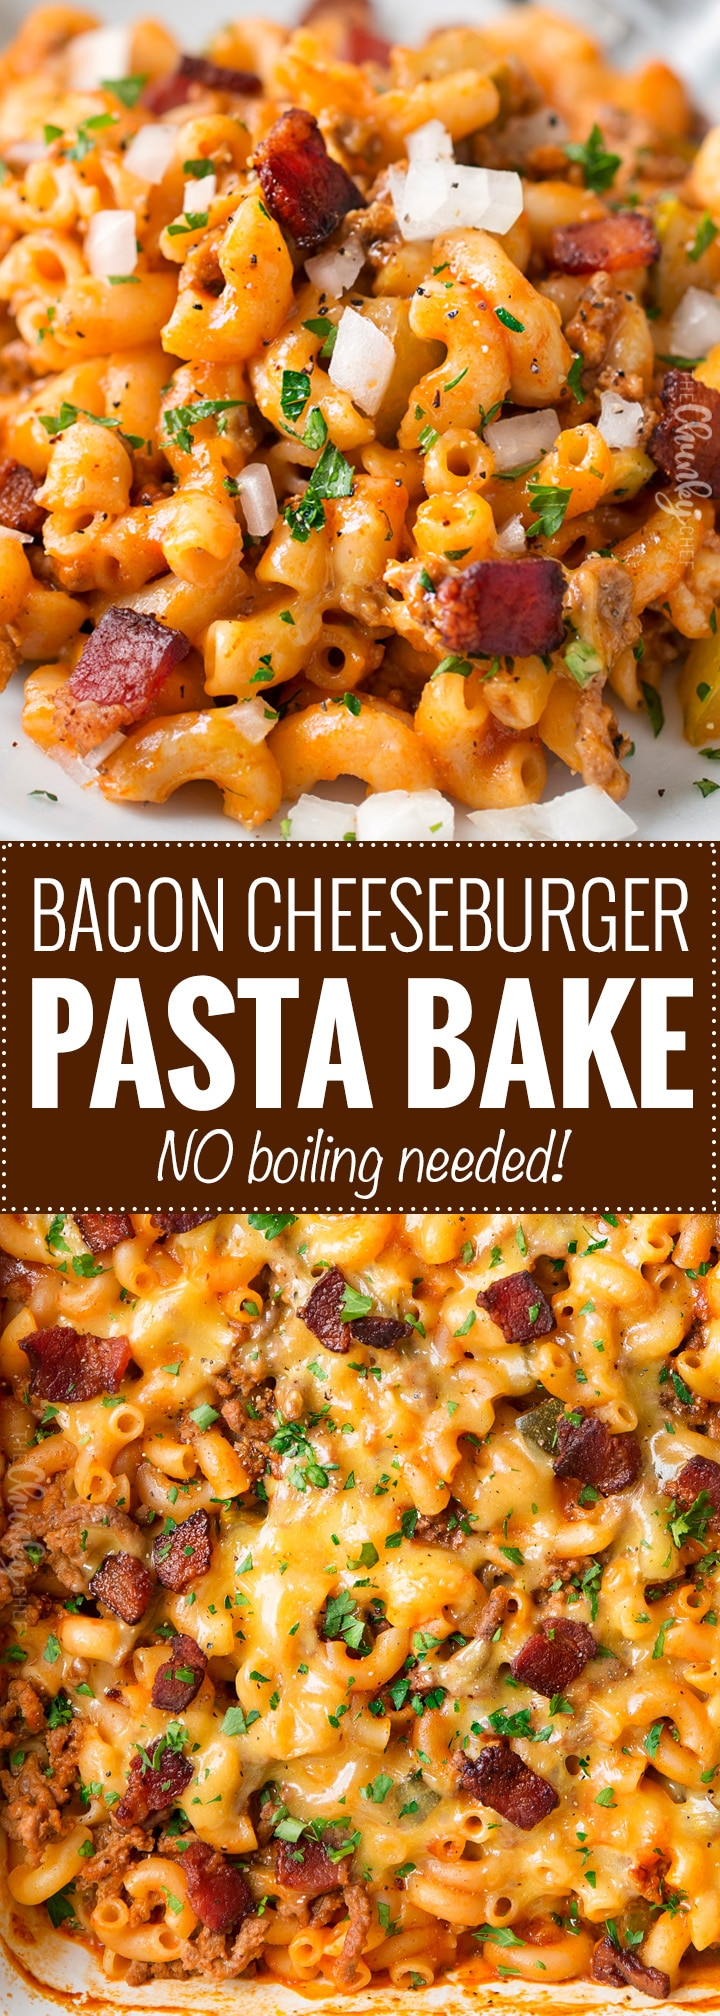 No-Boil One Pan Bacon Cheeseburger Pasta Bake | This weeknight dinner recipe is a tasty twist on an American classic, the bacon cheeseburger.  One pan, no pre-cooking the beef, and no boiling the pasta... it all bakes together into the best bacon cheeseburger pasta bake or casserole ever!! | The Chunky Chef | #baconcheeseburger #cheeseburger #pastabake #casserolerecipe #onepanmeal #onepotmeal #weeknightdinnerrecipe